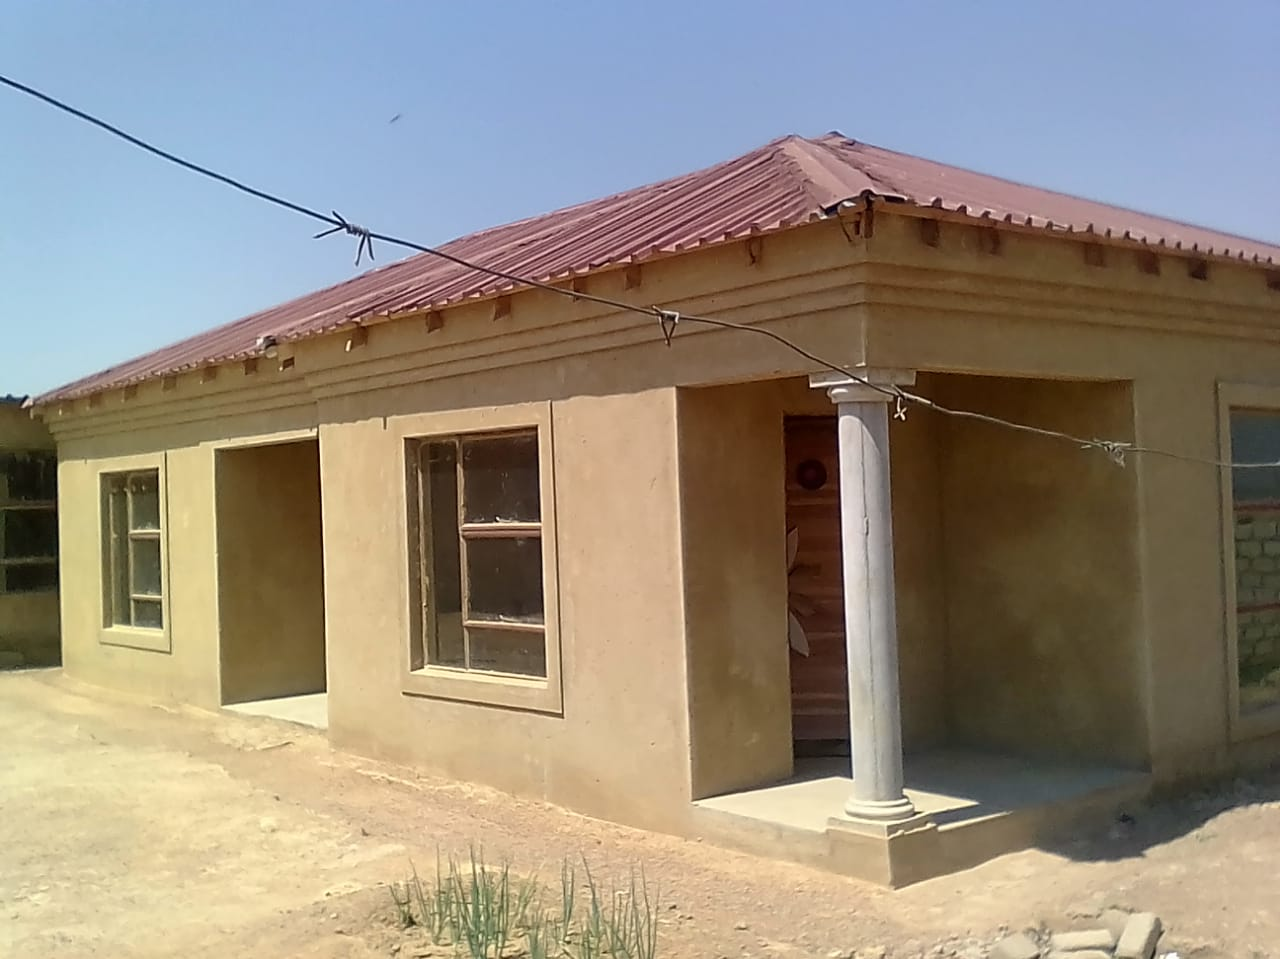 2 BEDROOMS HOUSE WITH 7 OUTSIDE ROOMS FOR SALE R250 000.00 CALL ALBERT @ 0712379208 FOR MORE INFO